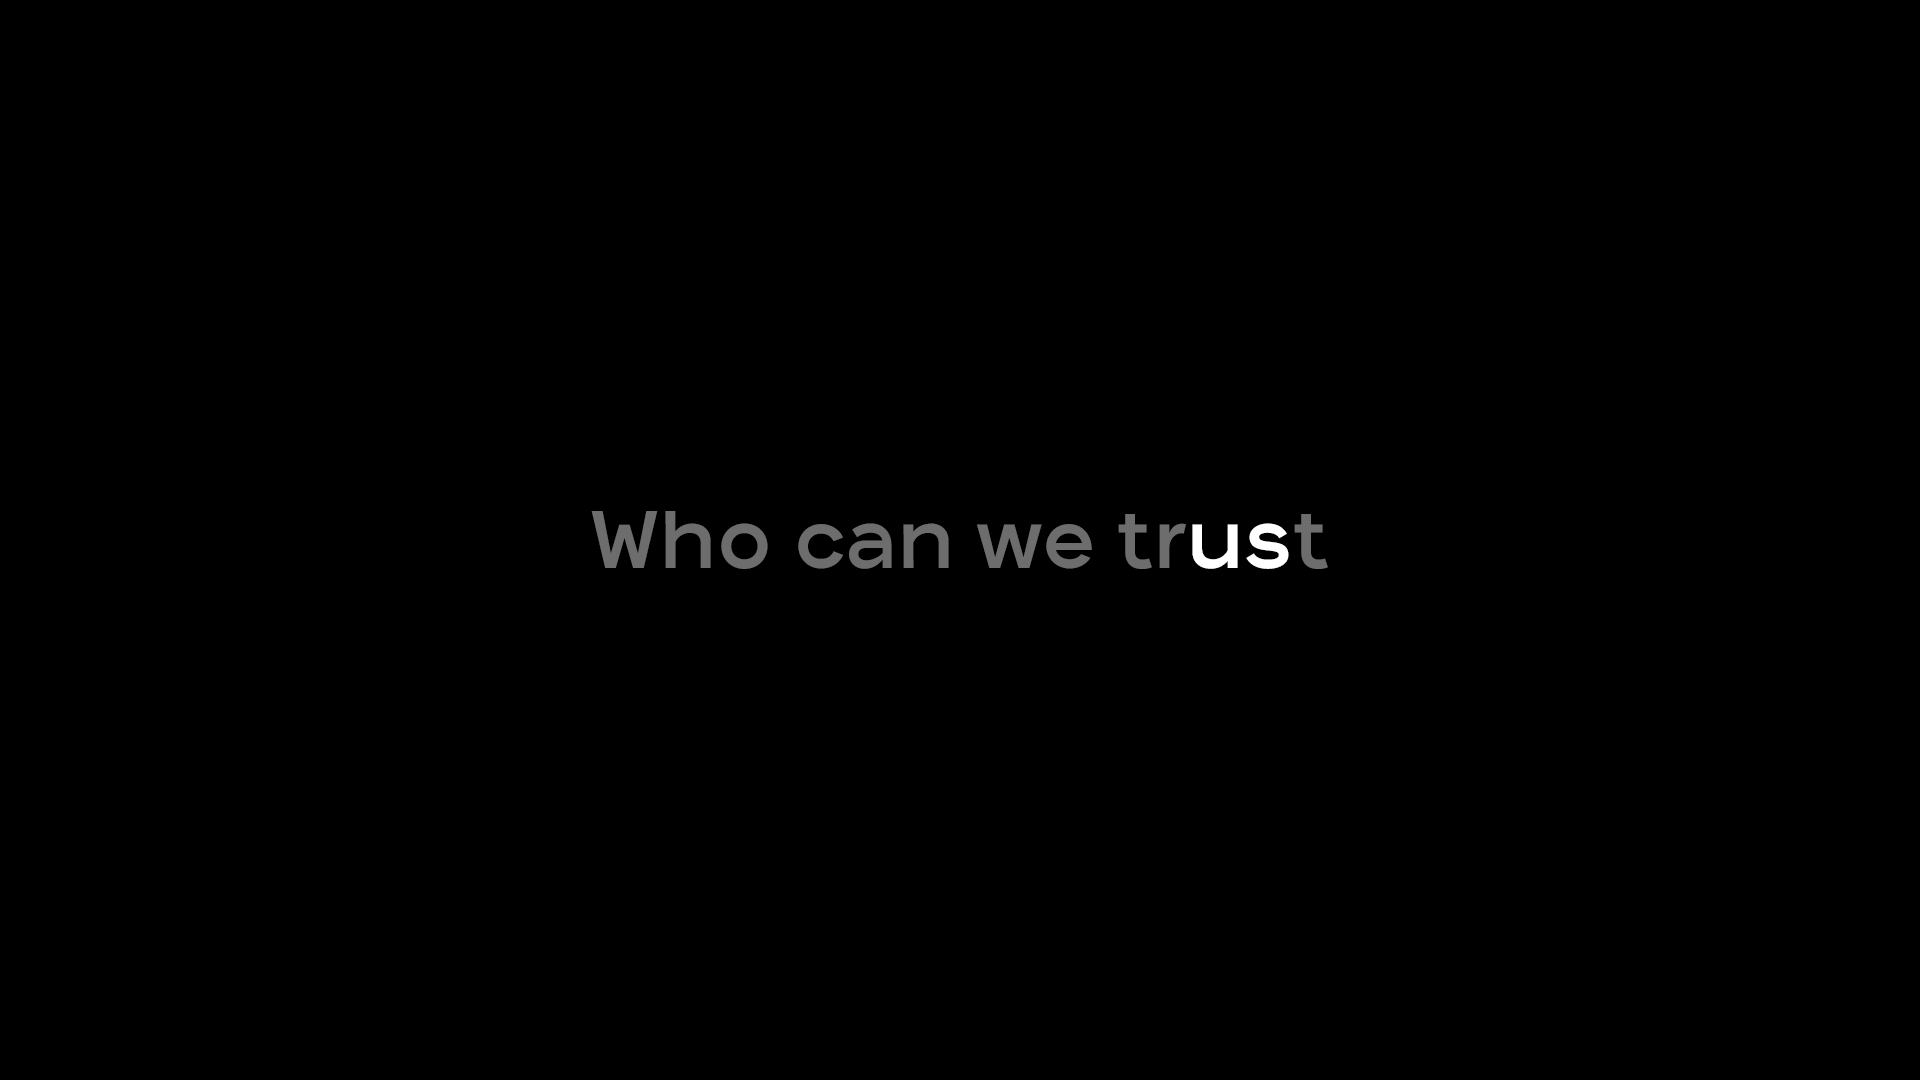 Who_can_we_trust